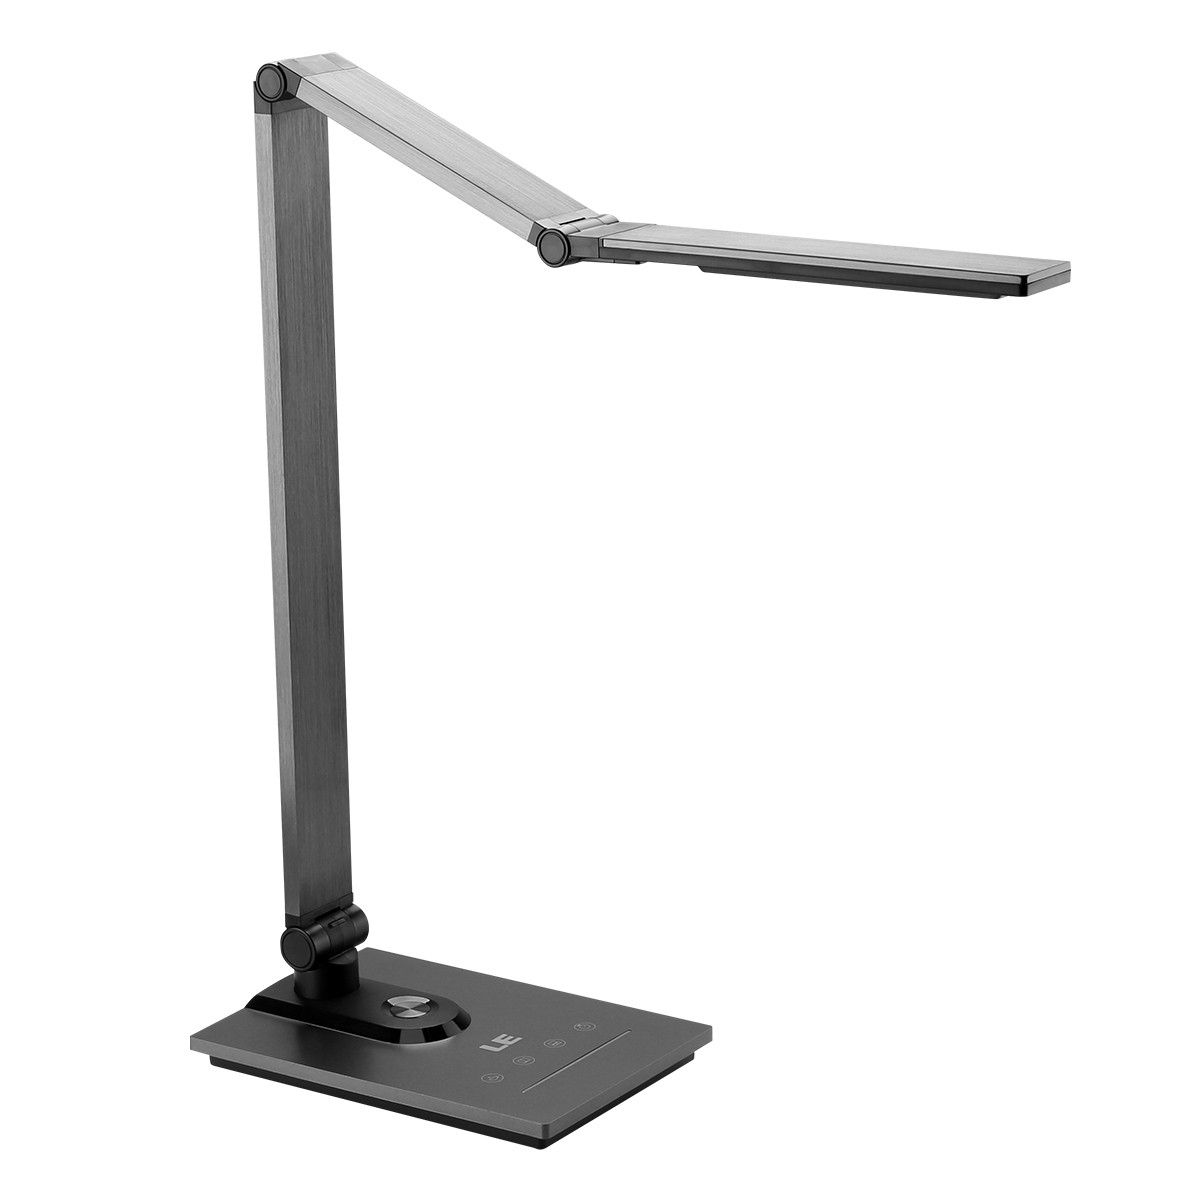 Best ideas about Dimmable Desk Lamp . Save or Pin LED Desk Lamp Dimmable 3 level Color Temperature Mode USB Now.